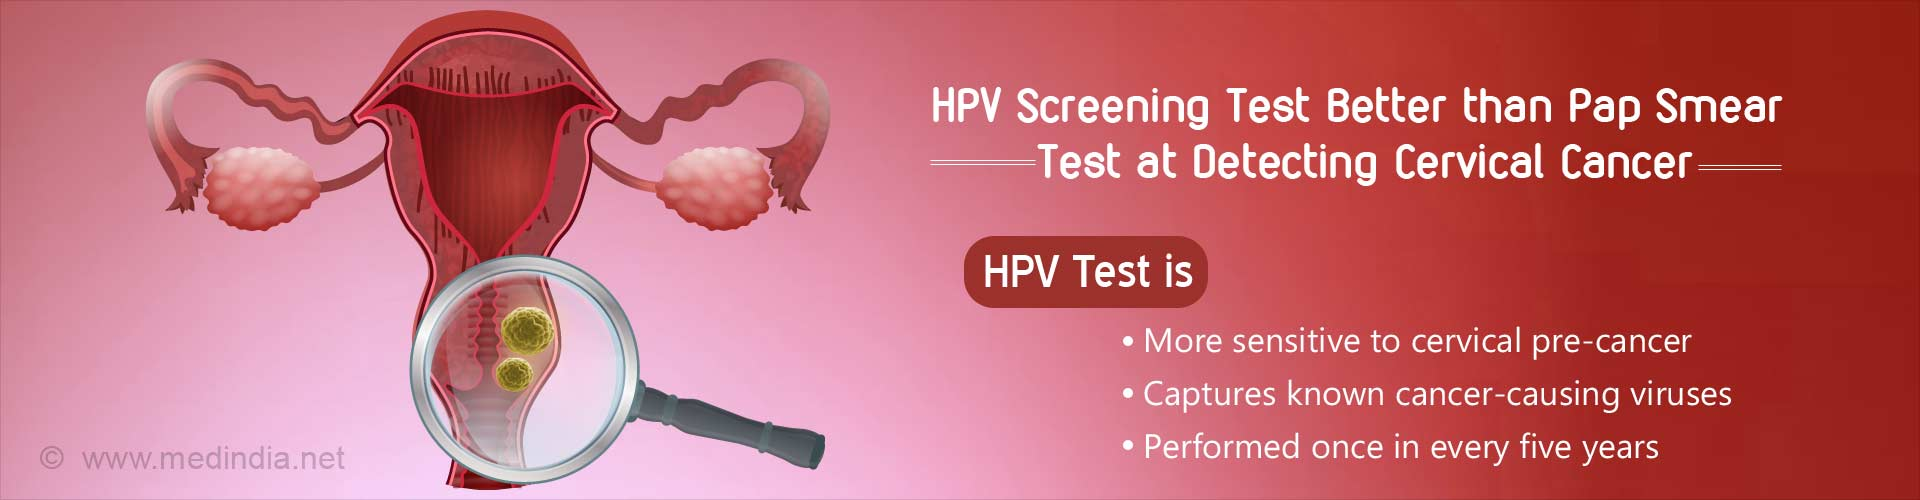 HPV Screening Test Might Just be Enough for Cervical Cancer Detection